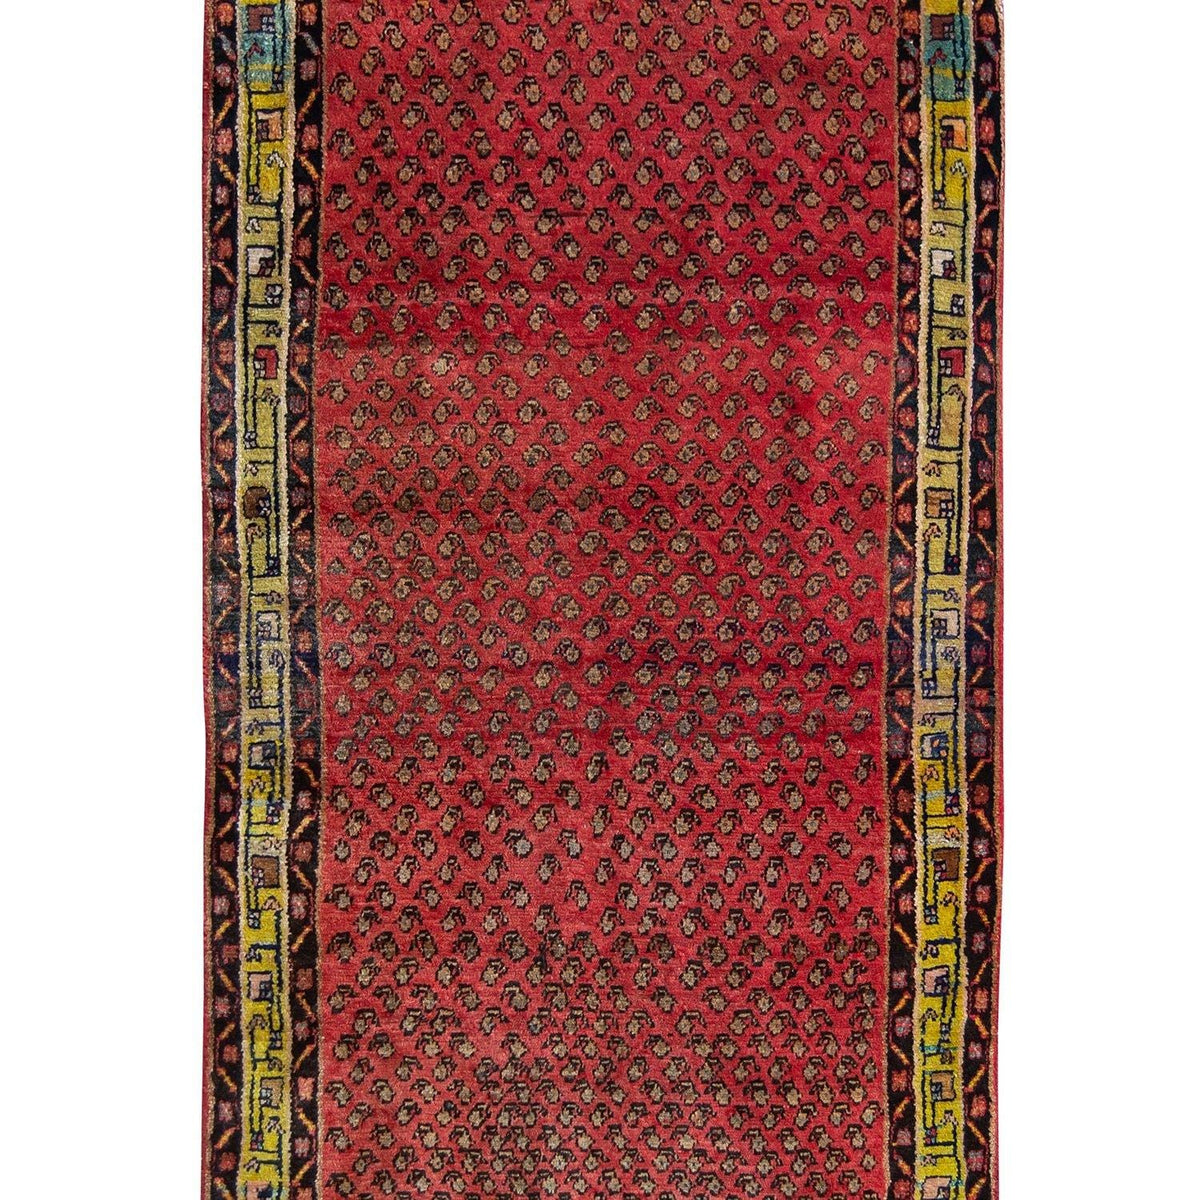 20784 Persian-Rug | House-of-Haghi | NewMarket | Auckland | NZ | Handmade Persian Rugs | Hand Knotted Persian Rugs